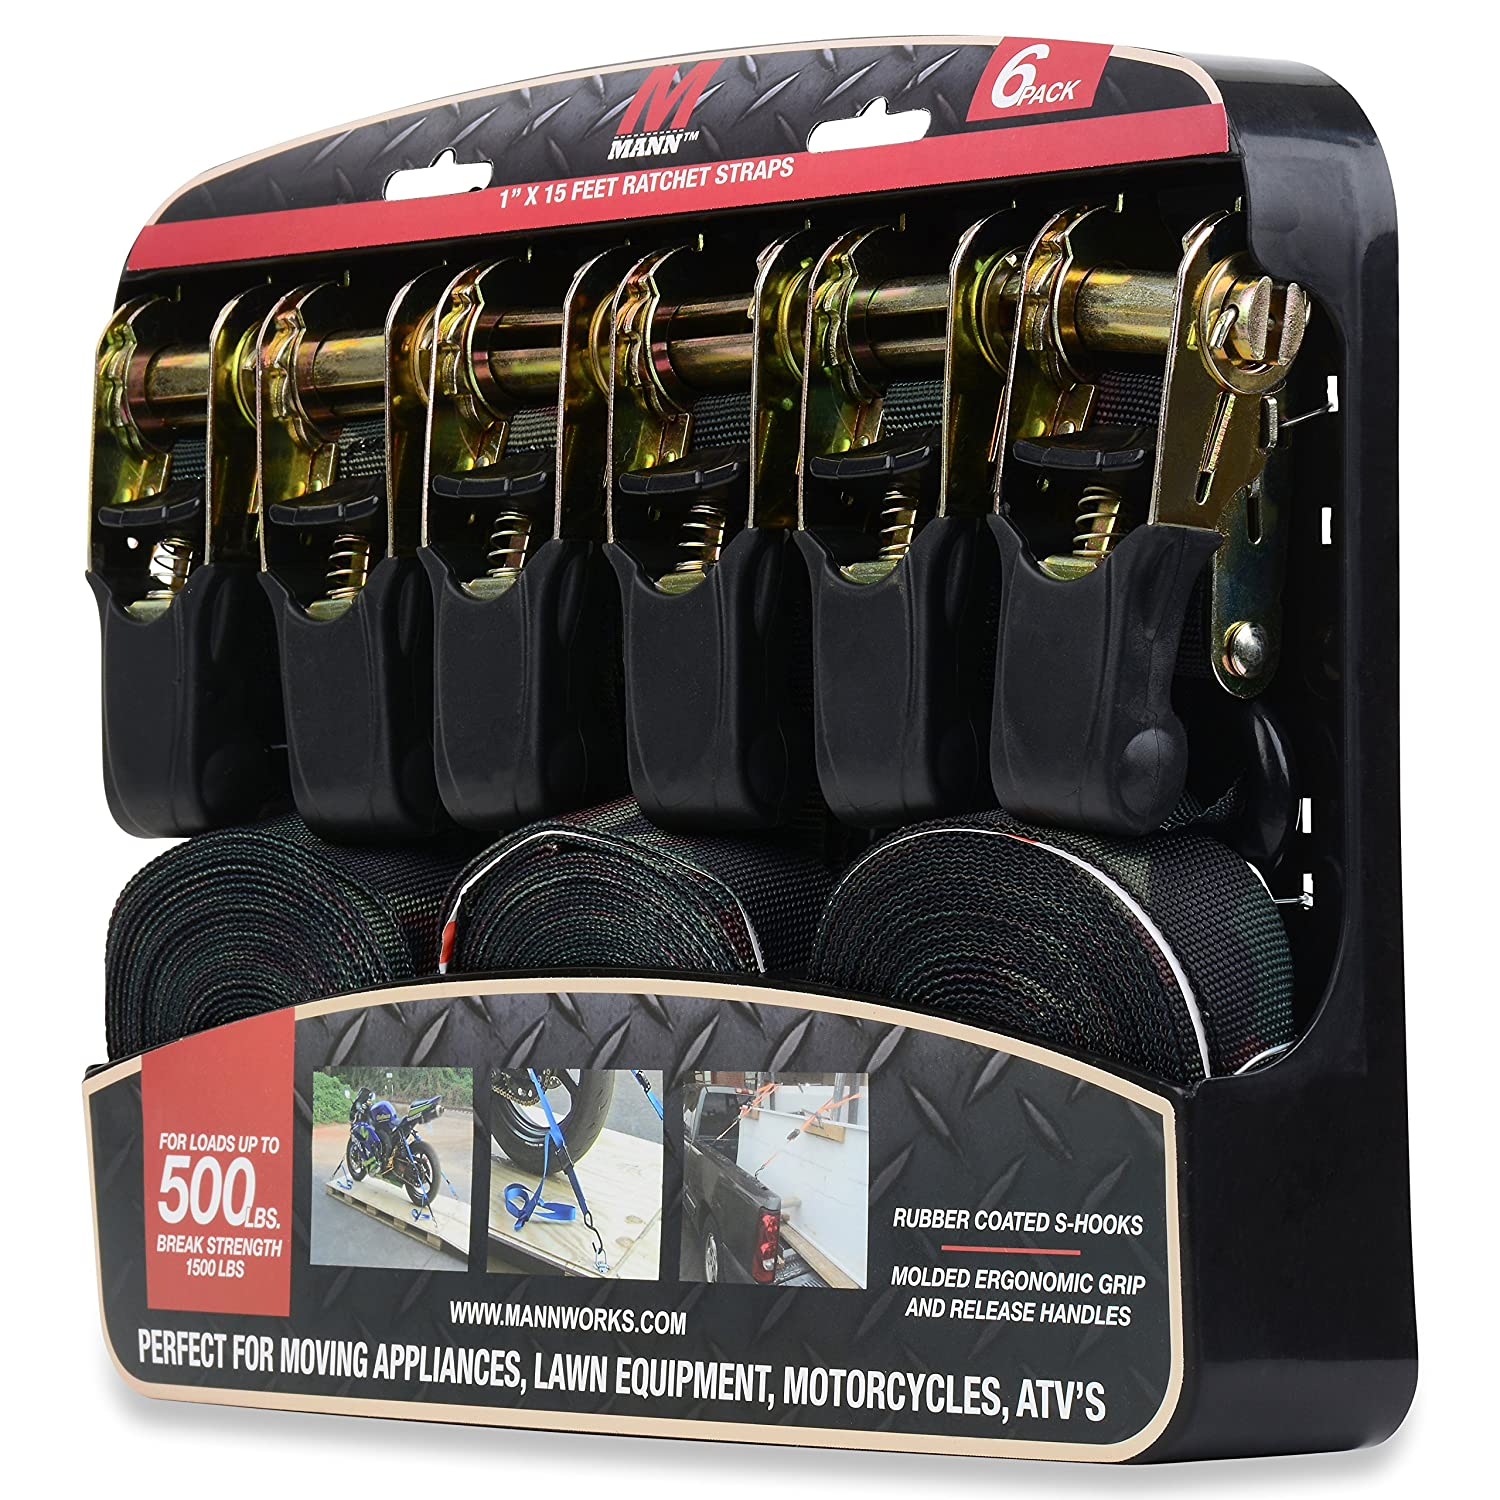 Mann Ratchet Tie Downs Straps 6-Pack with S-hooks 1-Inch x 15-Feet 500 Lbs Load Cap Camo 1500 Lb Break Strength